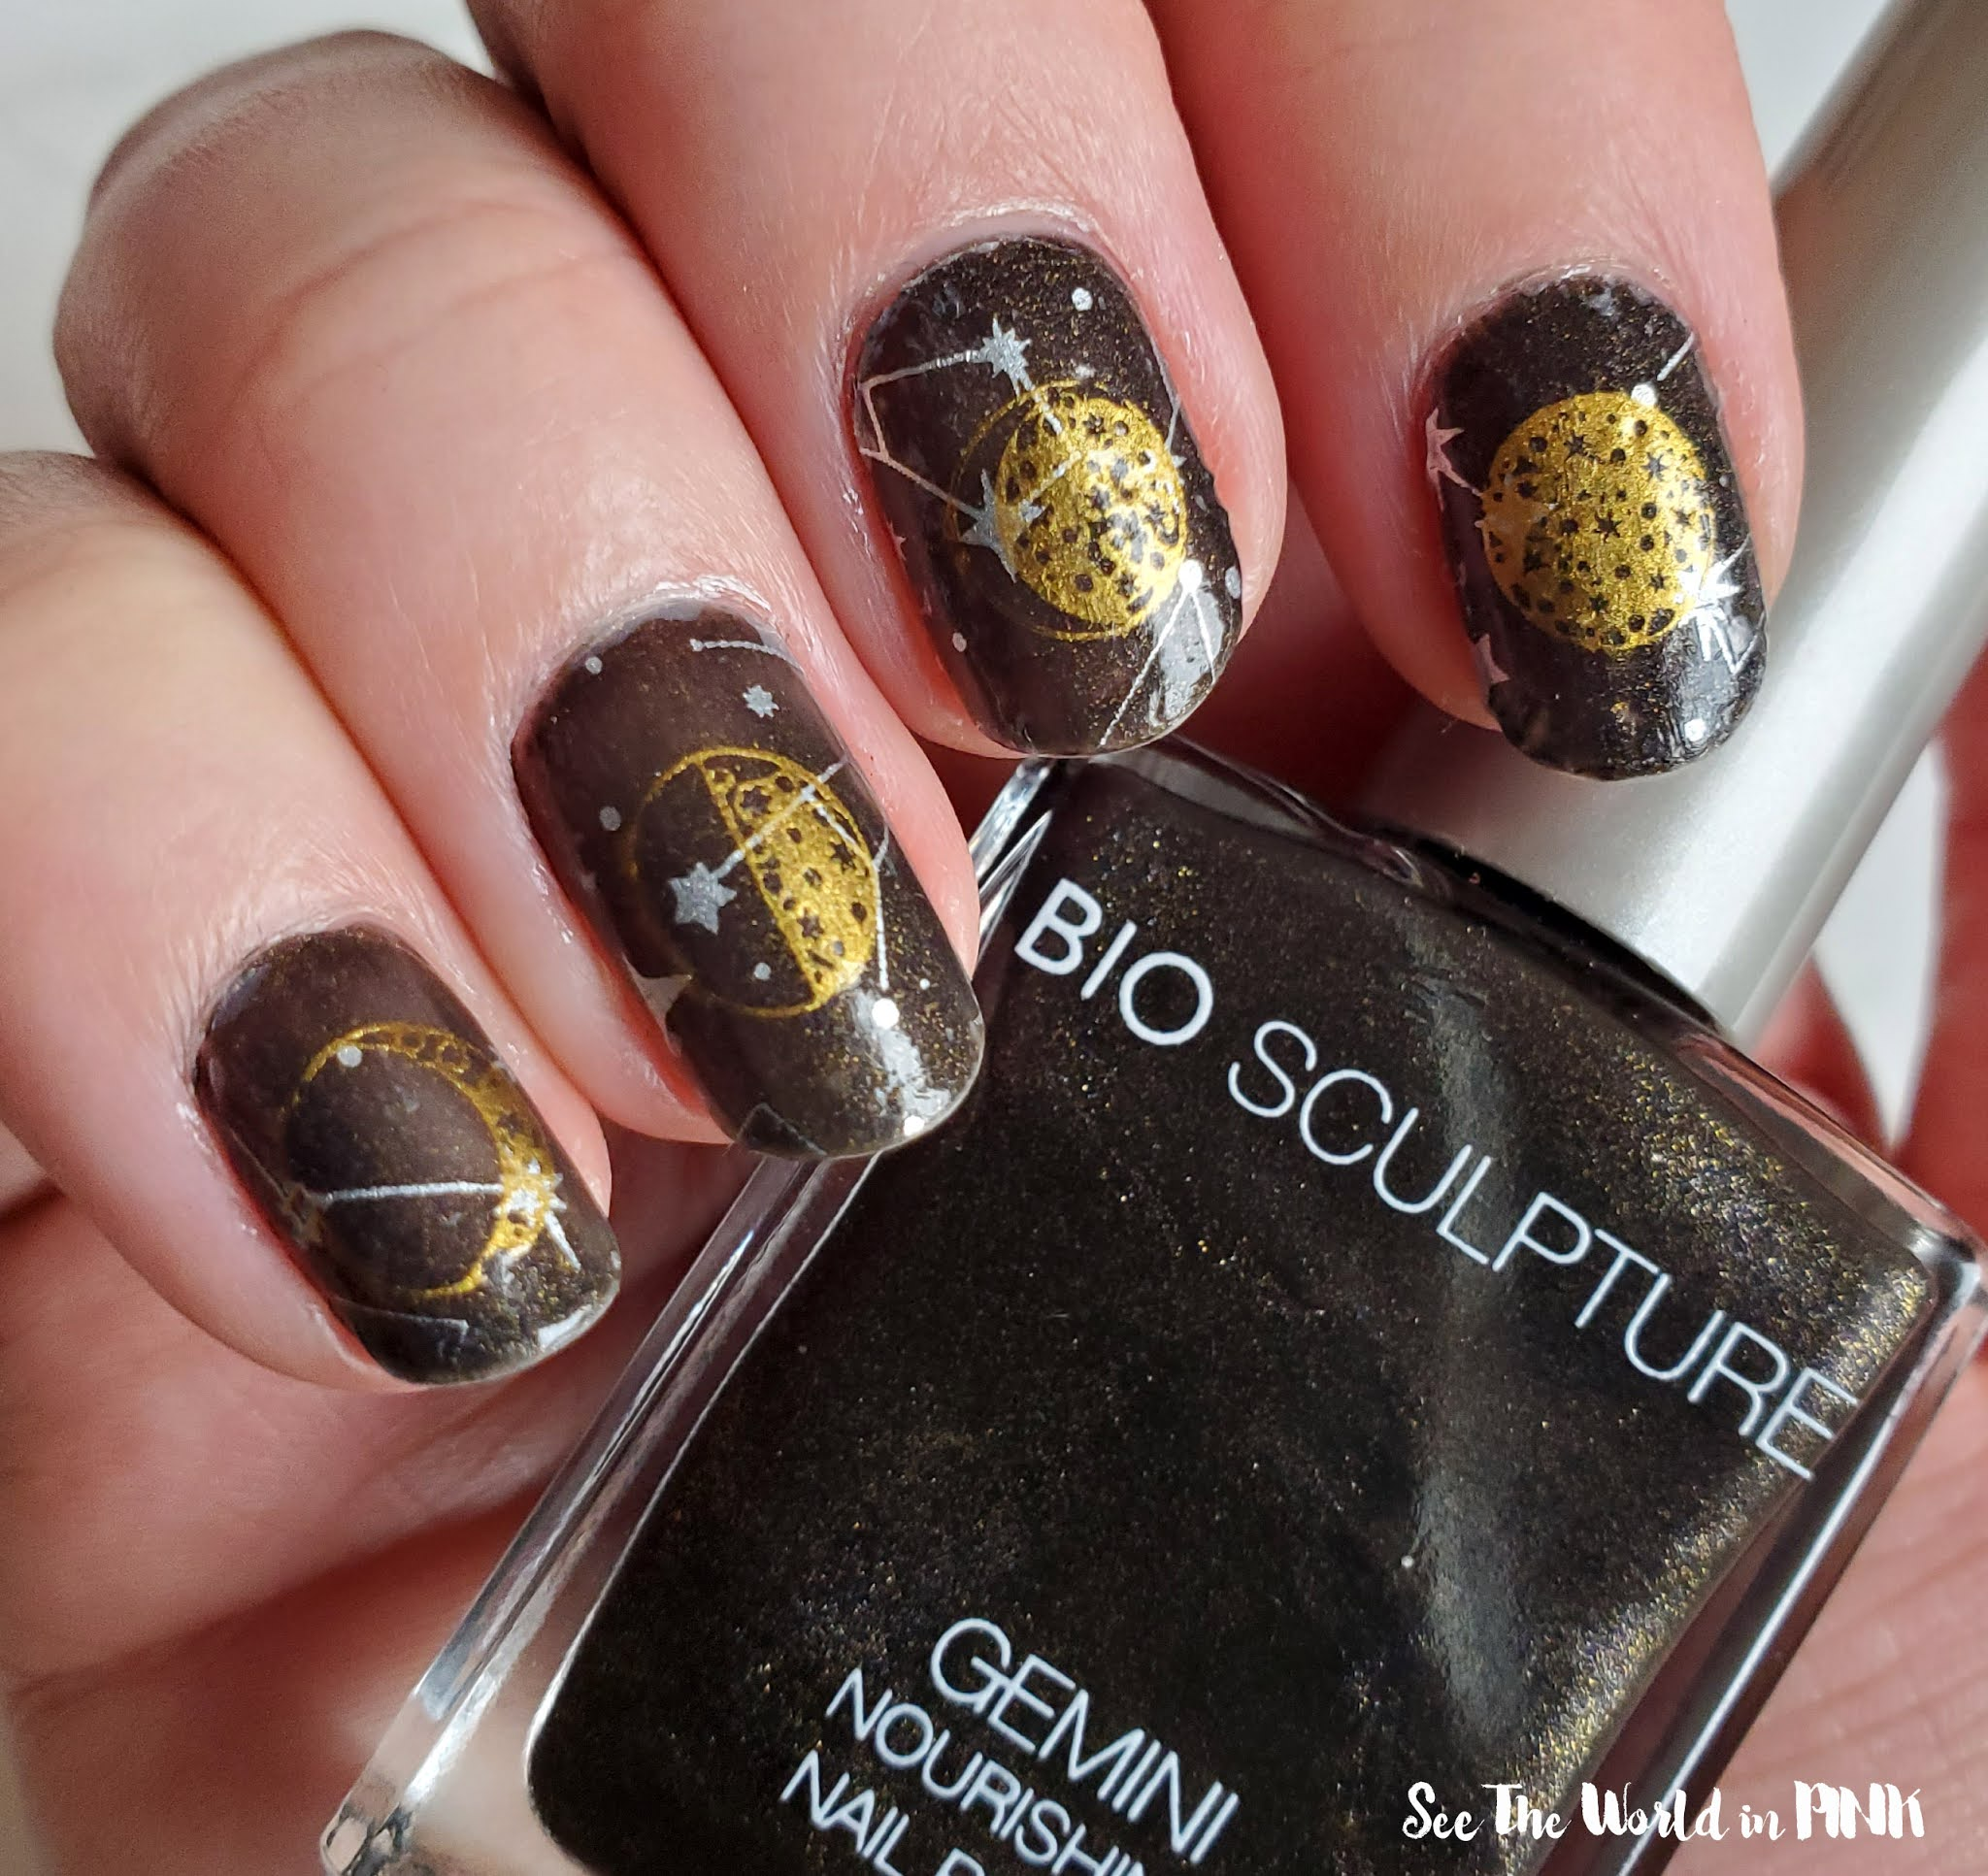 Manicure Monday - Moon and Stars Nails